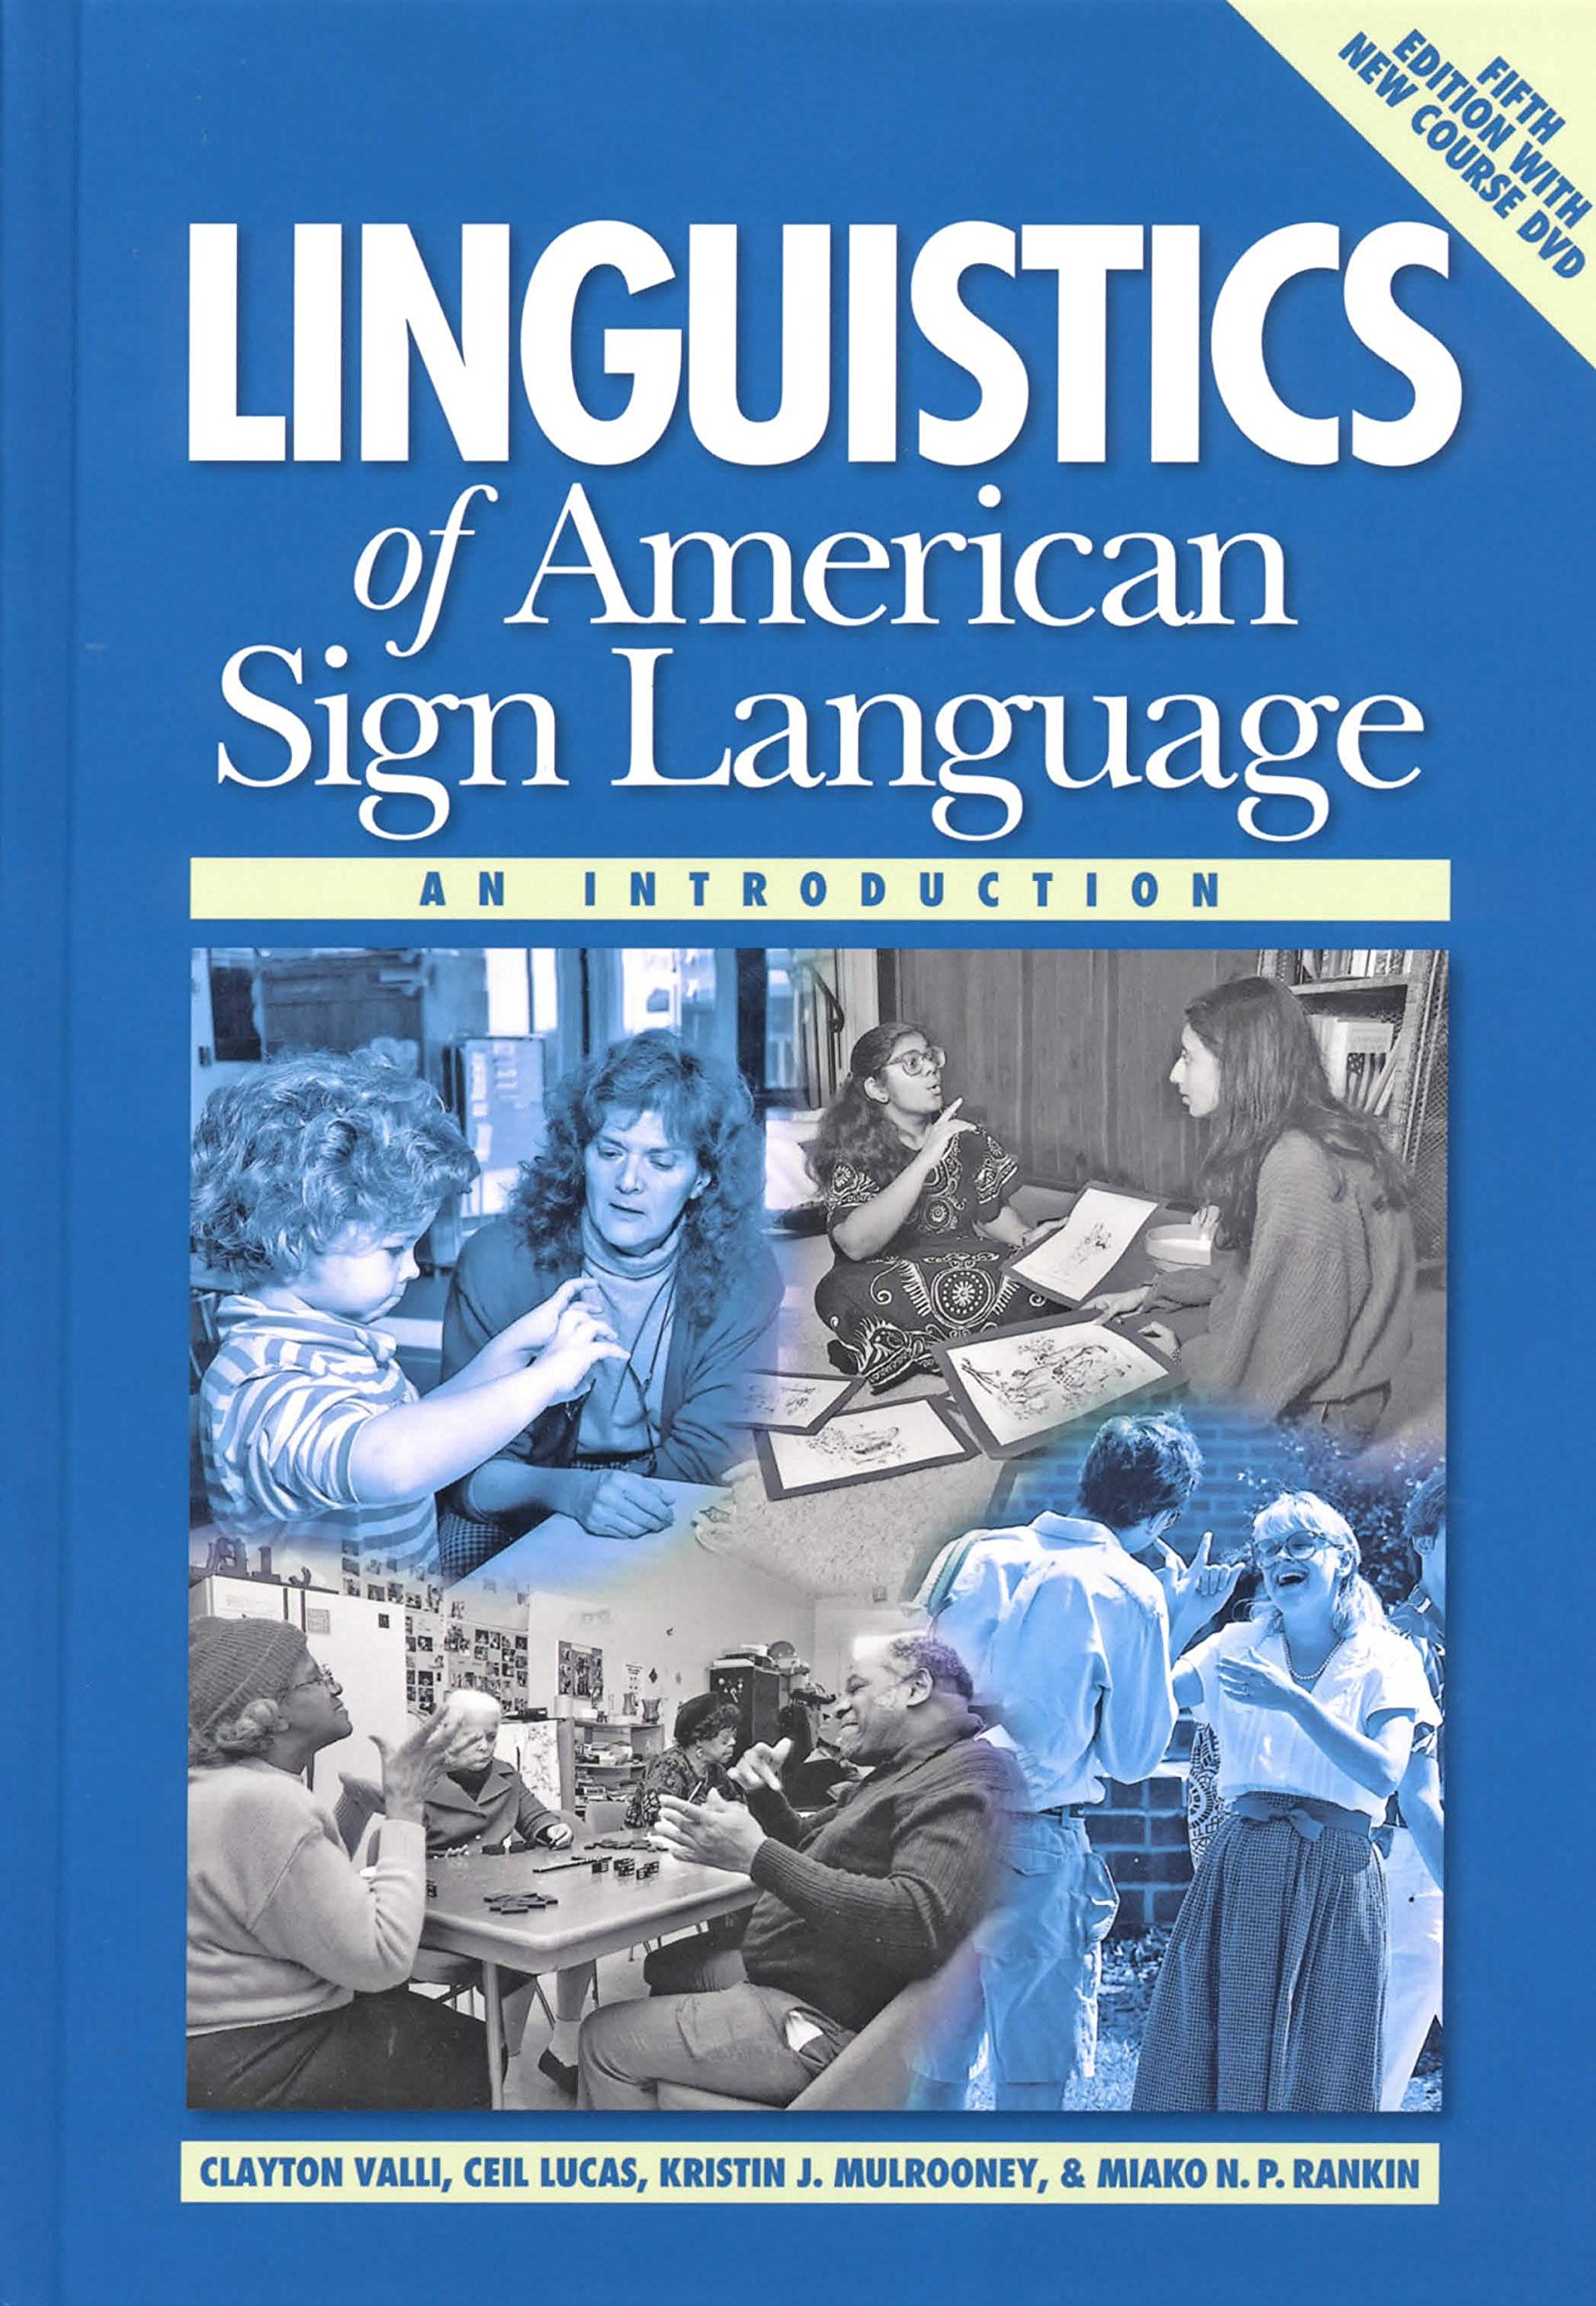 Linguistics of American Sign Language, 5th Ed.: An Introduction by Harris Communications